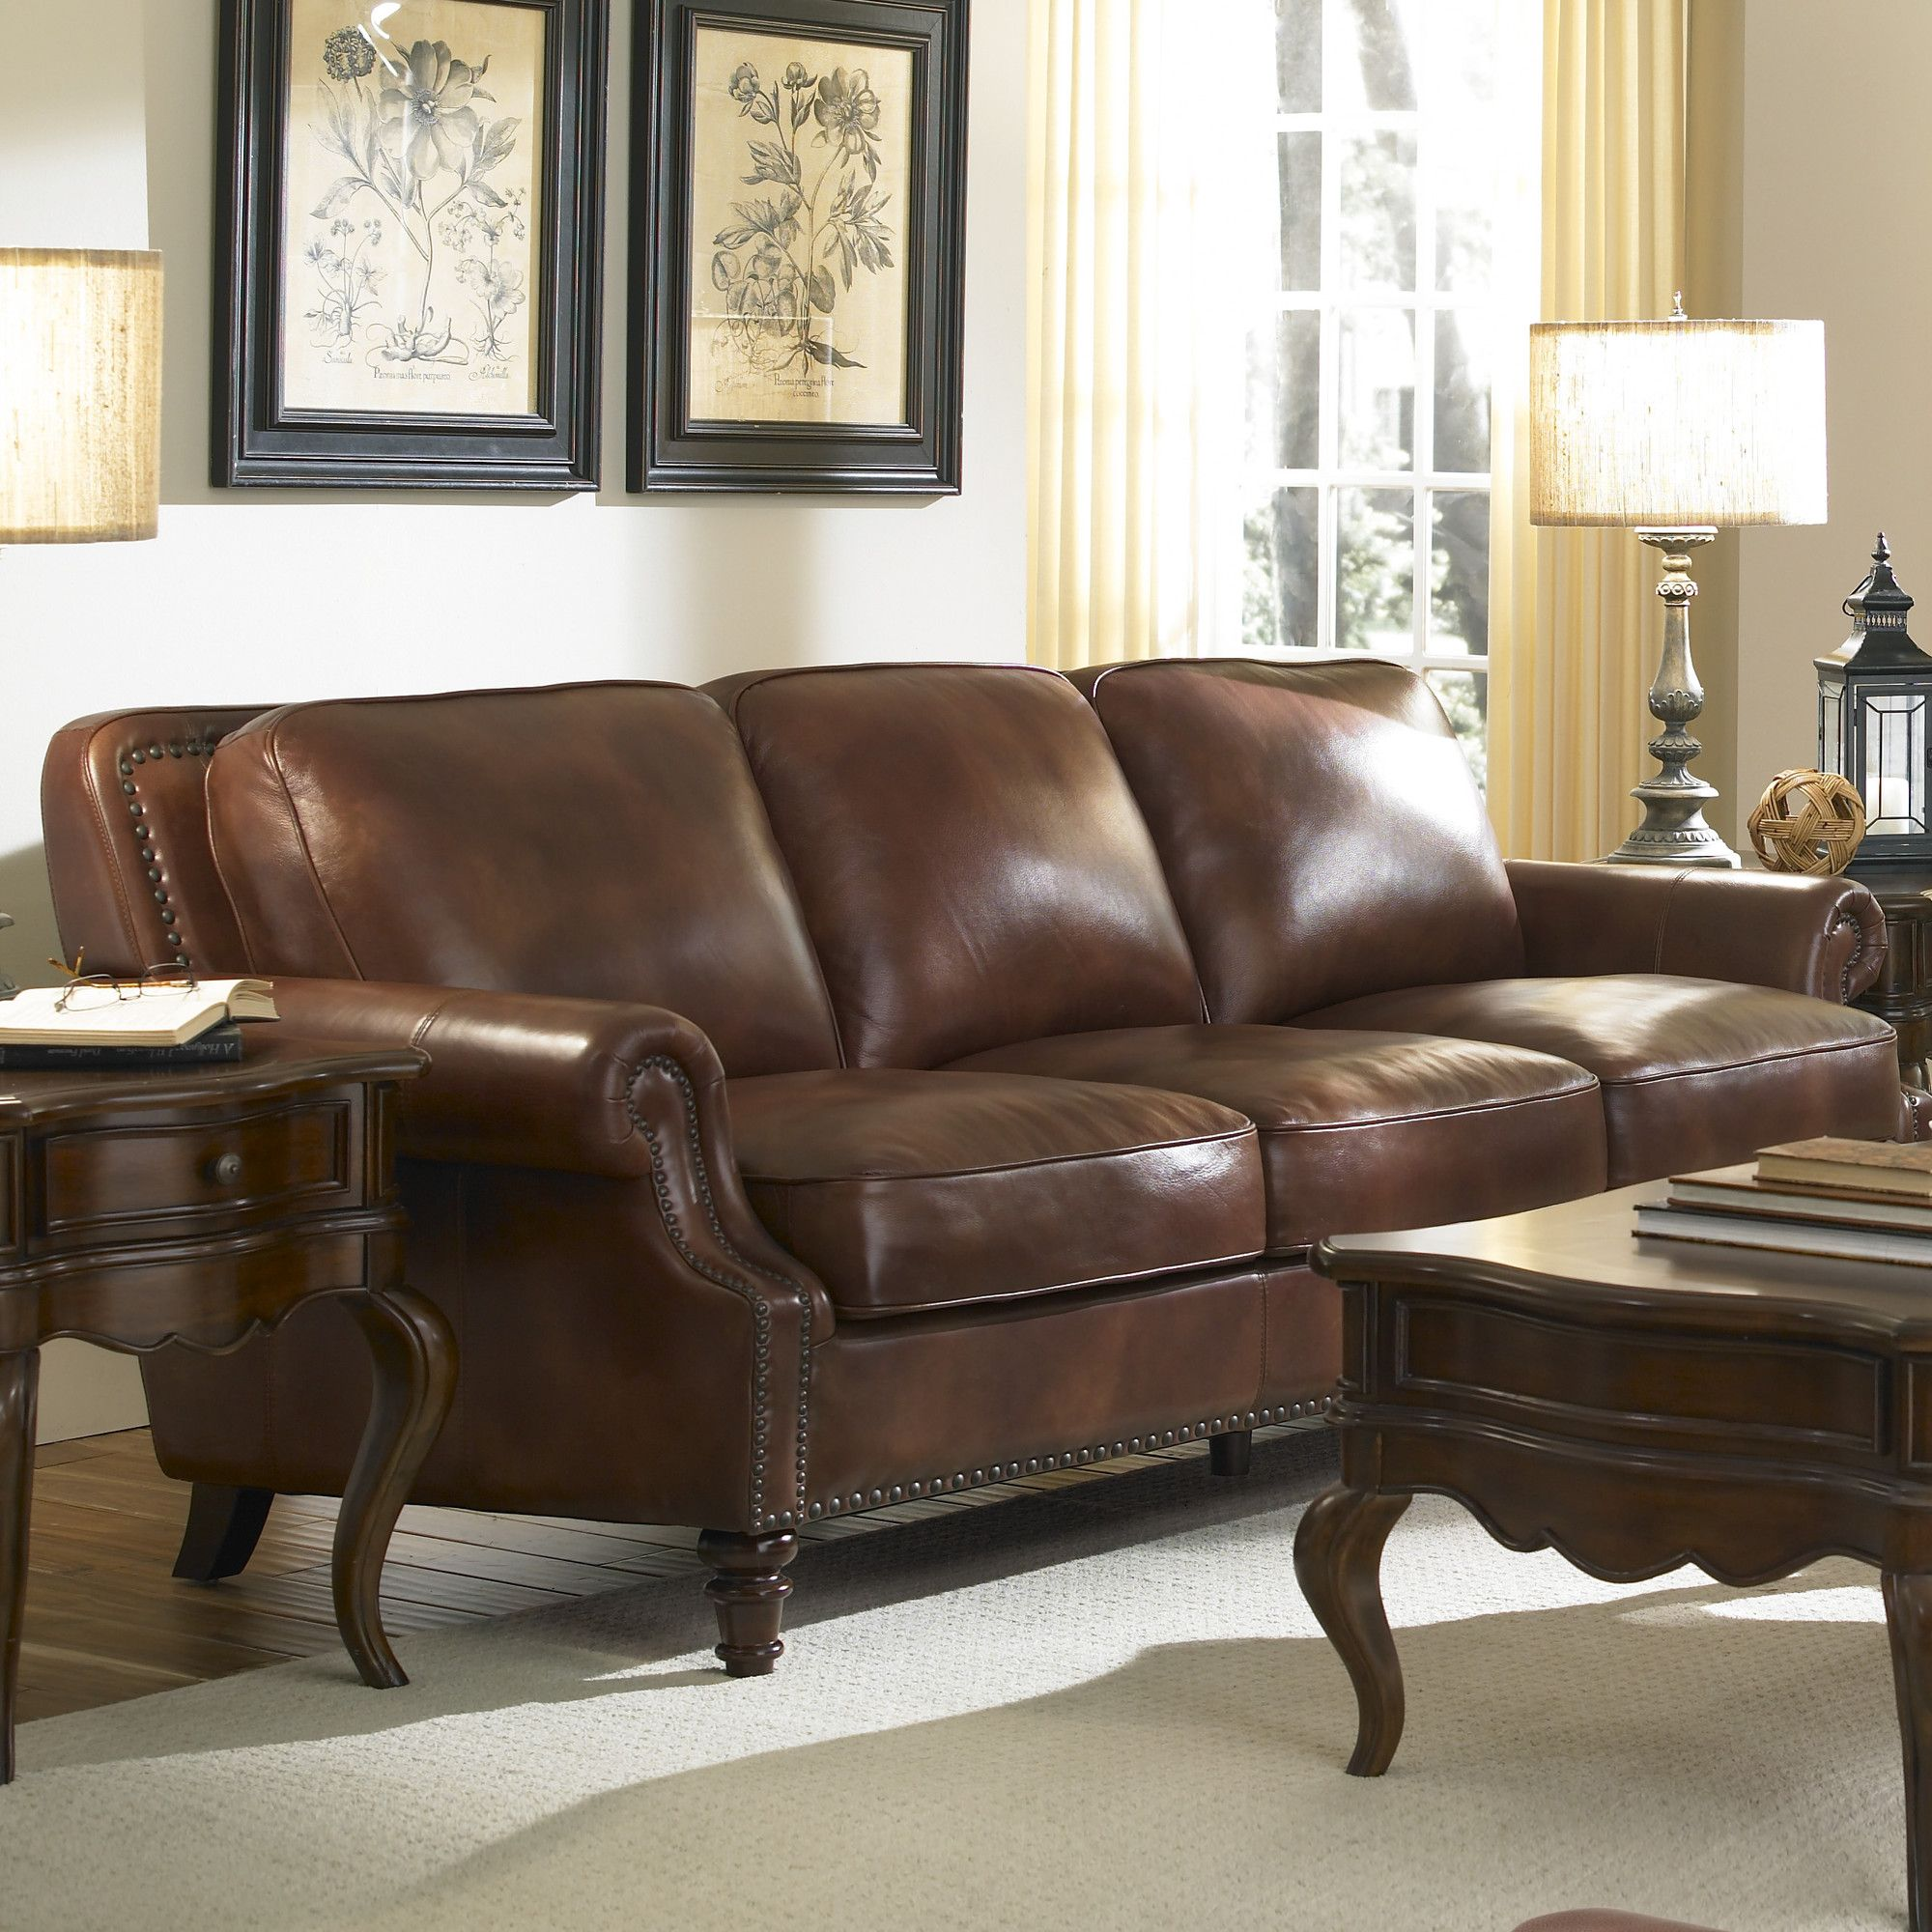 Strange Lazzaro Leather Leather Sofa Reviews Wayfair Couches Gamerscity Chair Design For Home Gamerscityorg